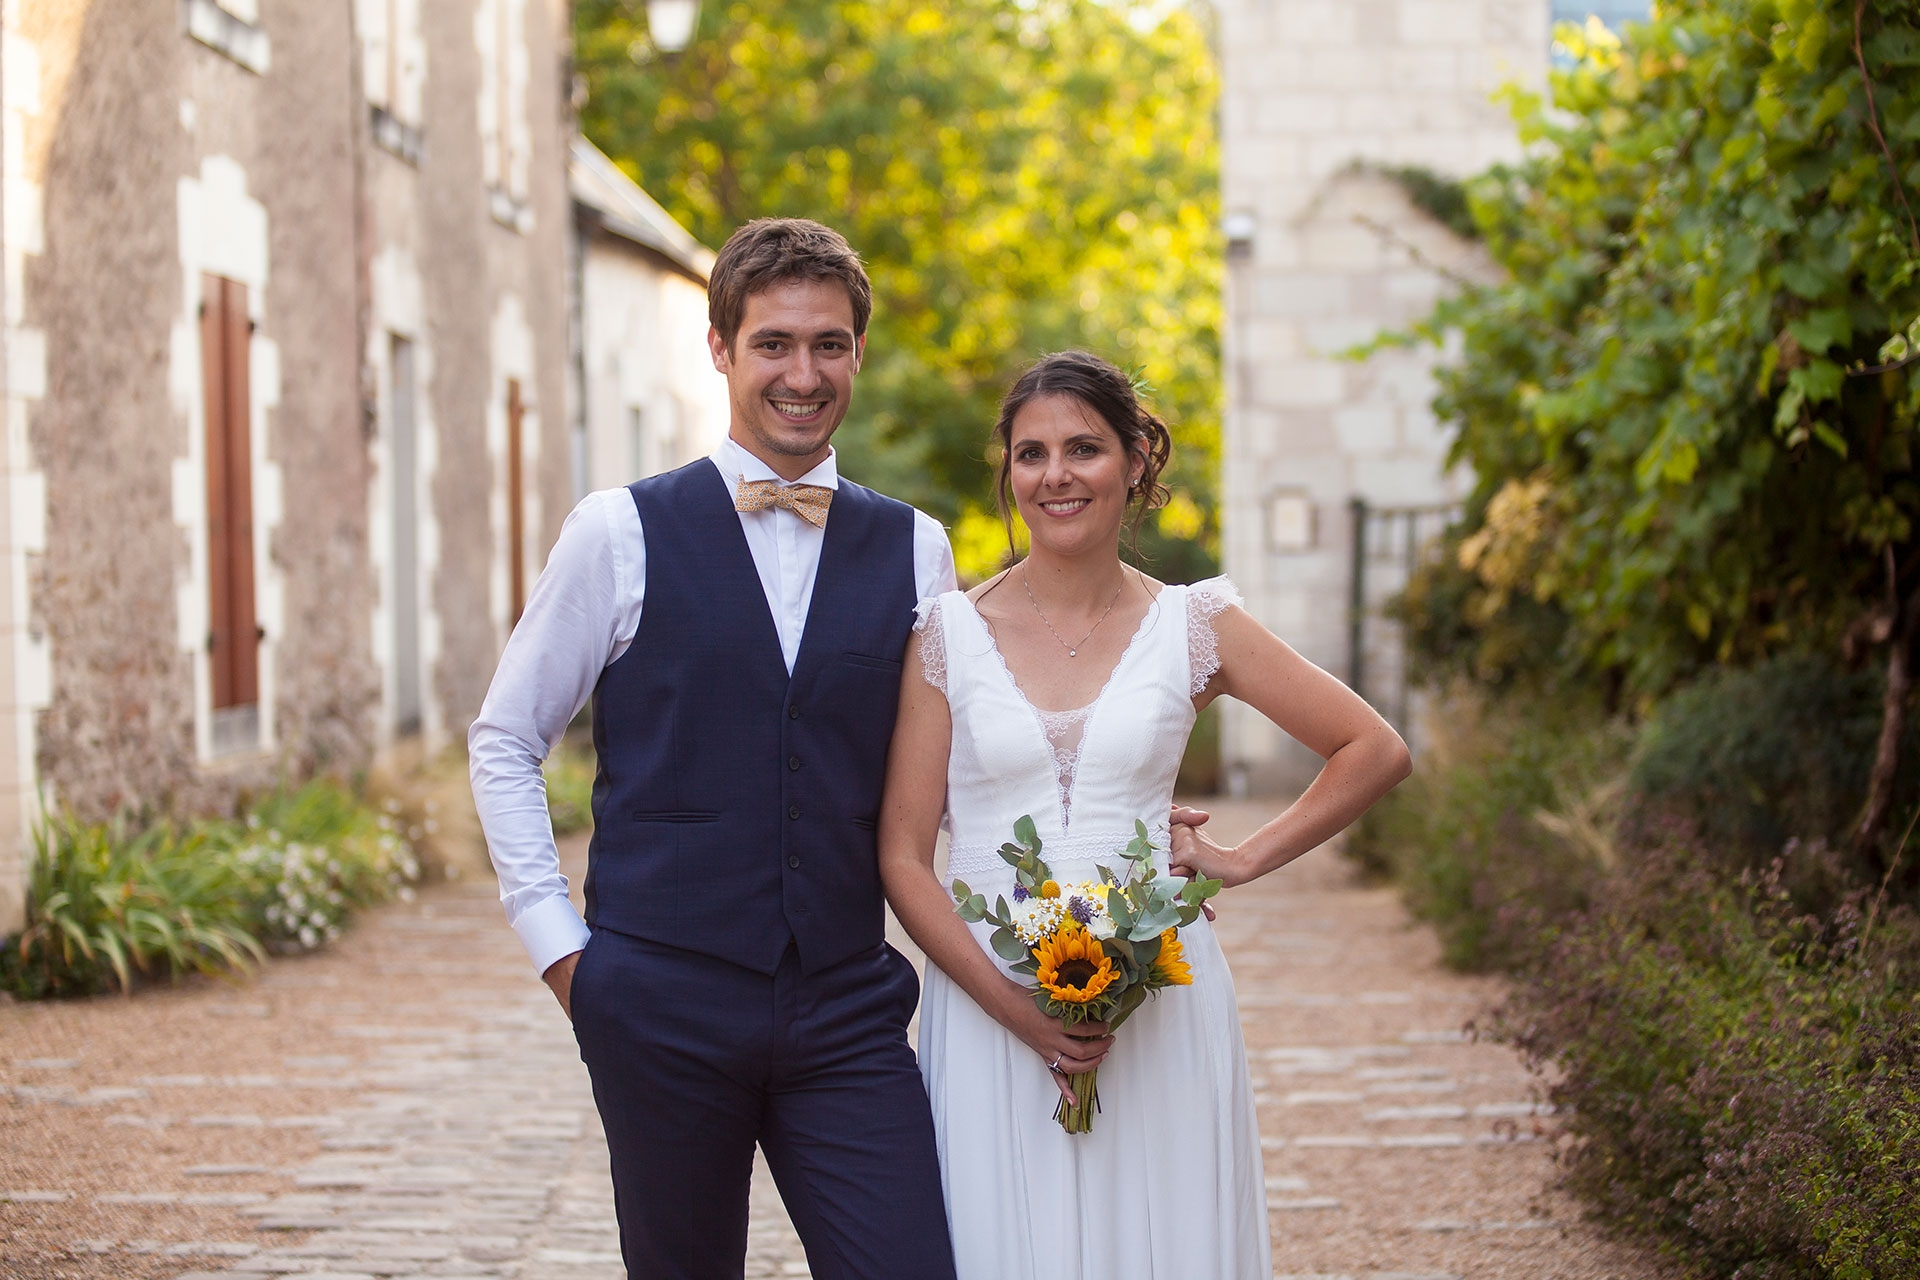 particuliers-evenements-mariage-oui-elise&quentin-72